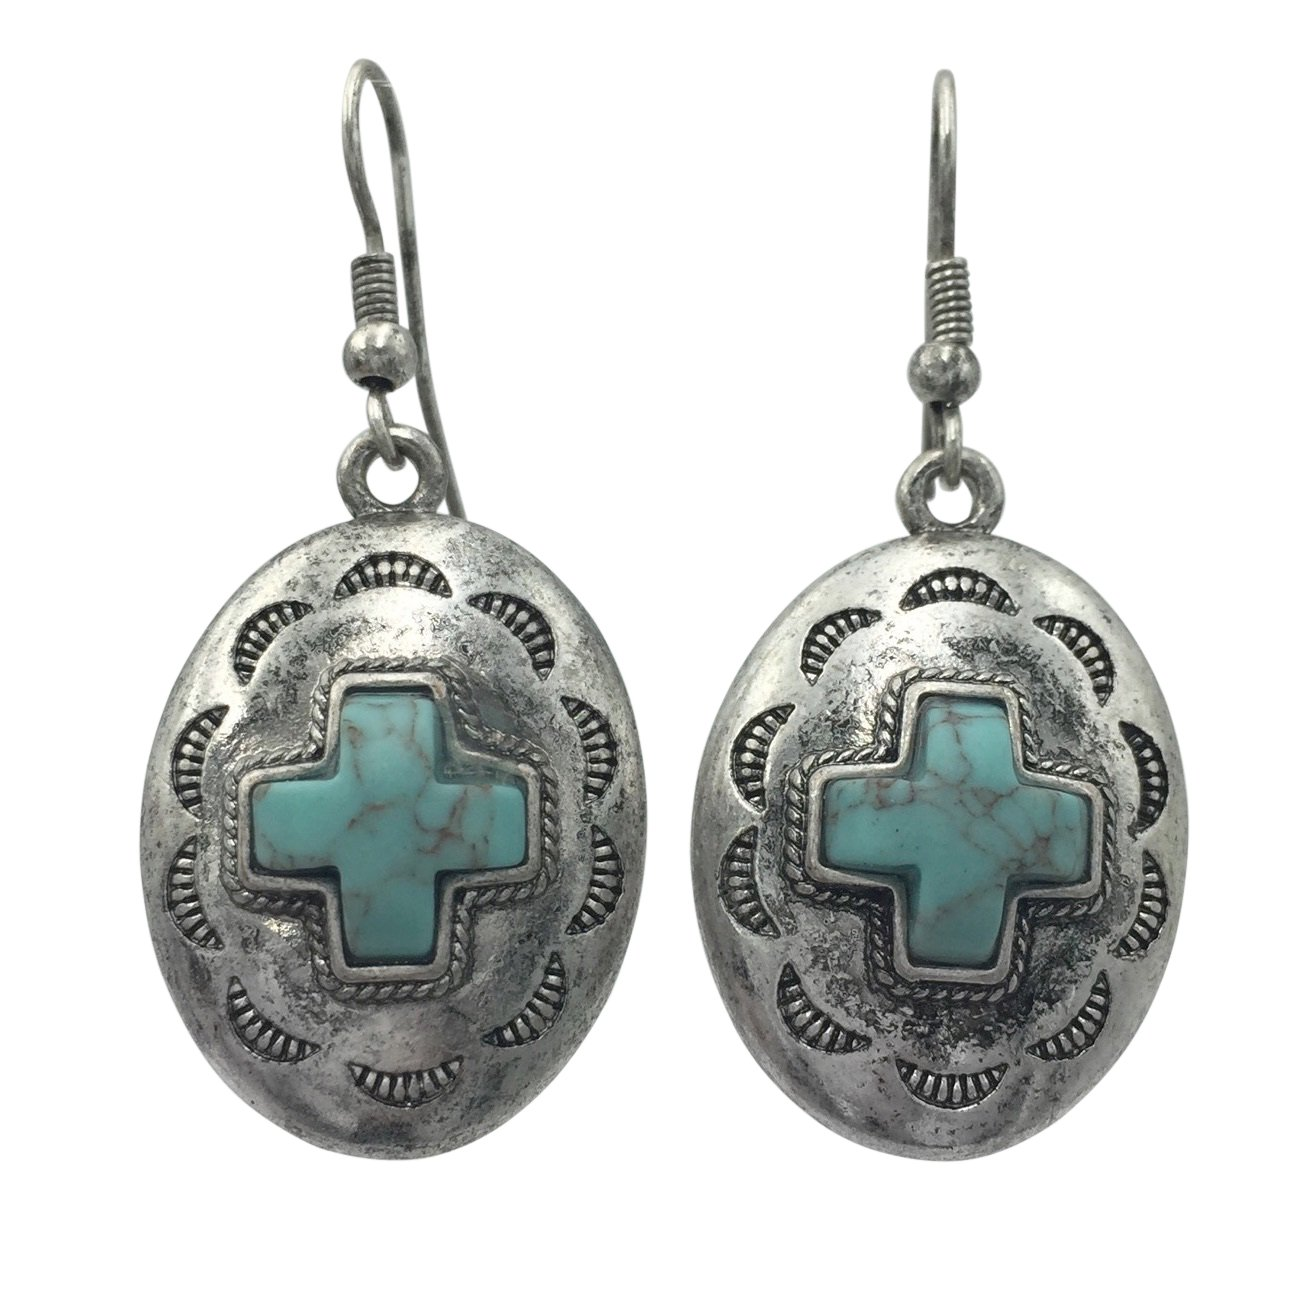 Western Style Imitation Turquoise Silver Tone Dangle Earrings (Oval Squared Cross)